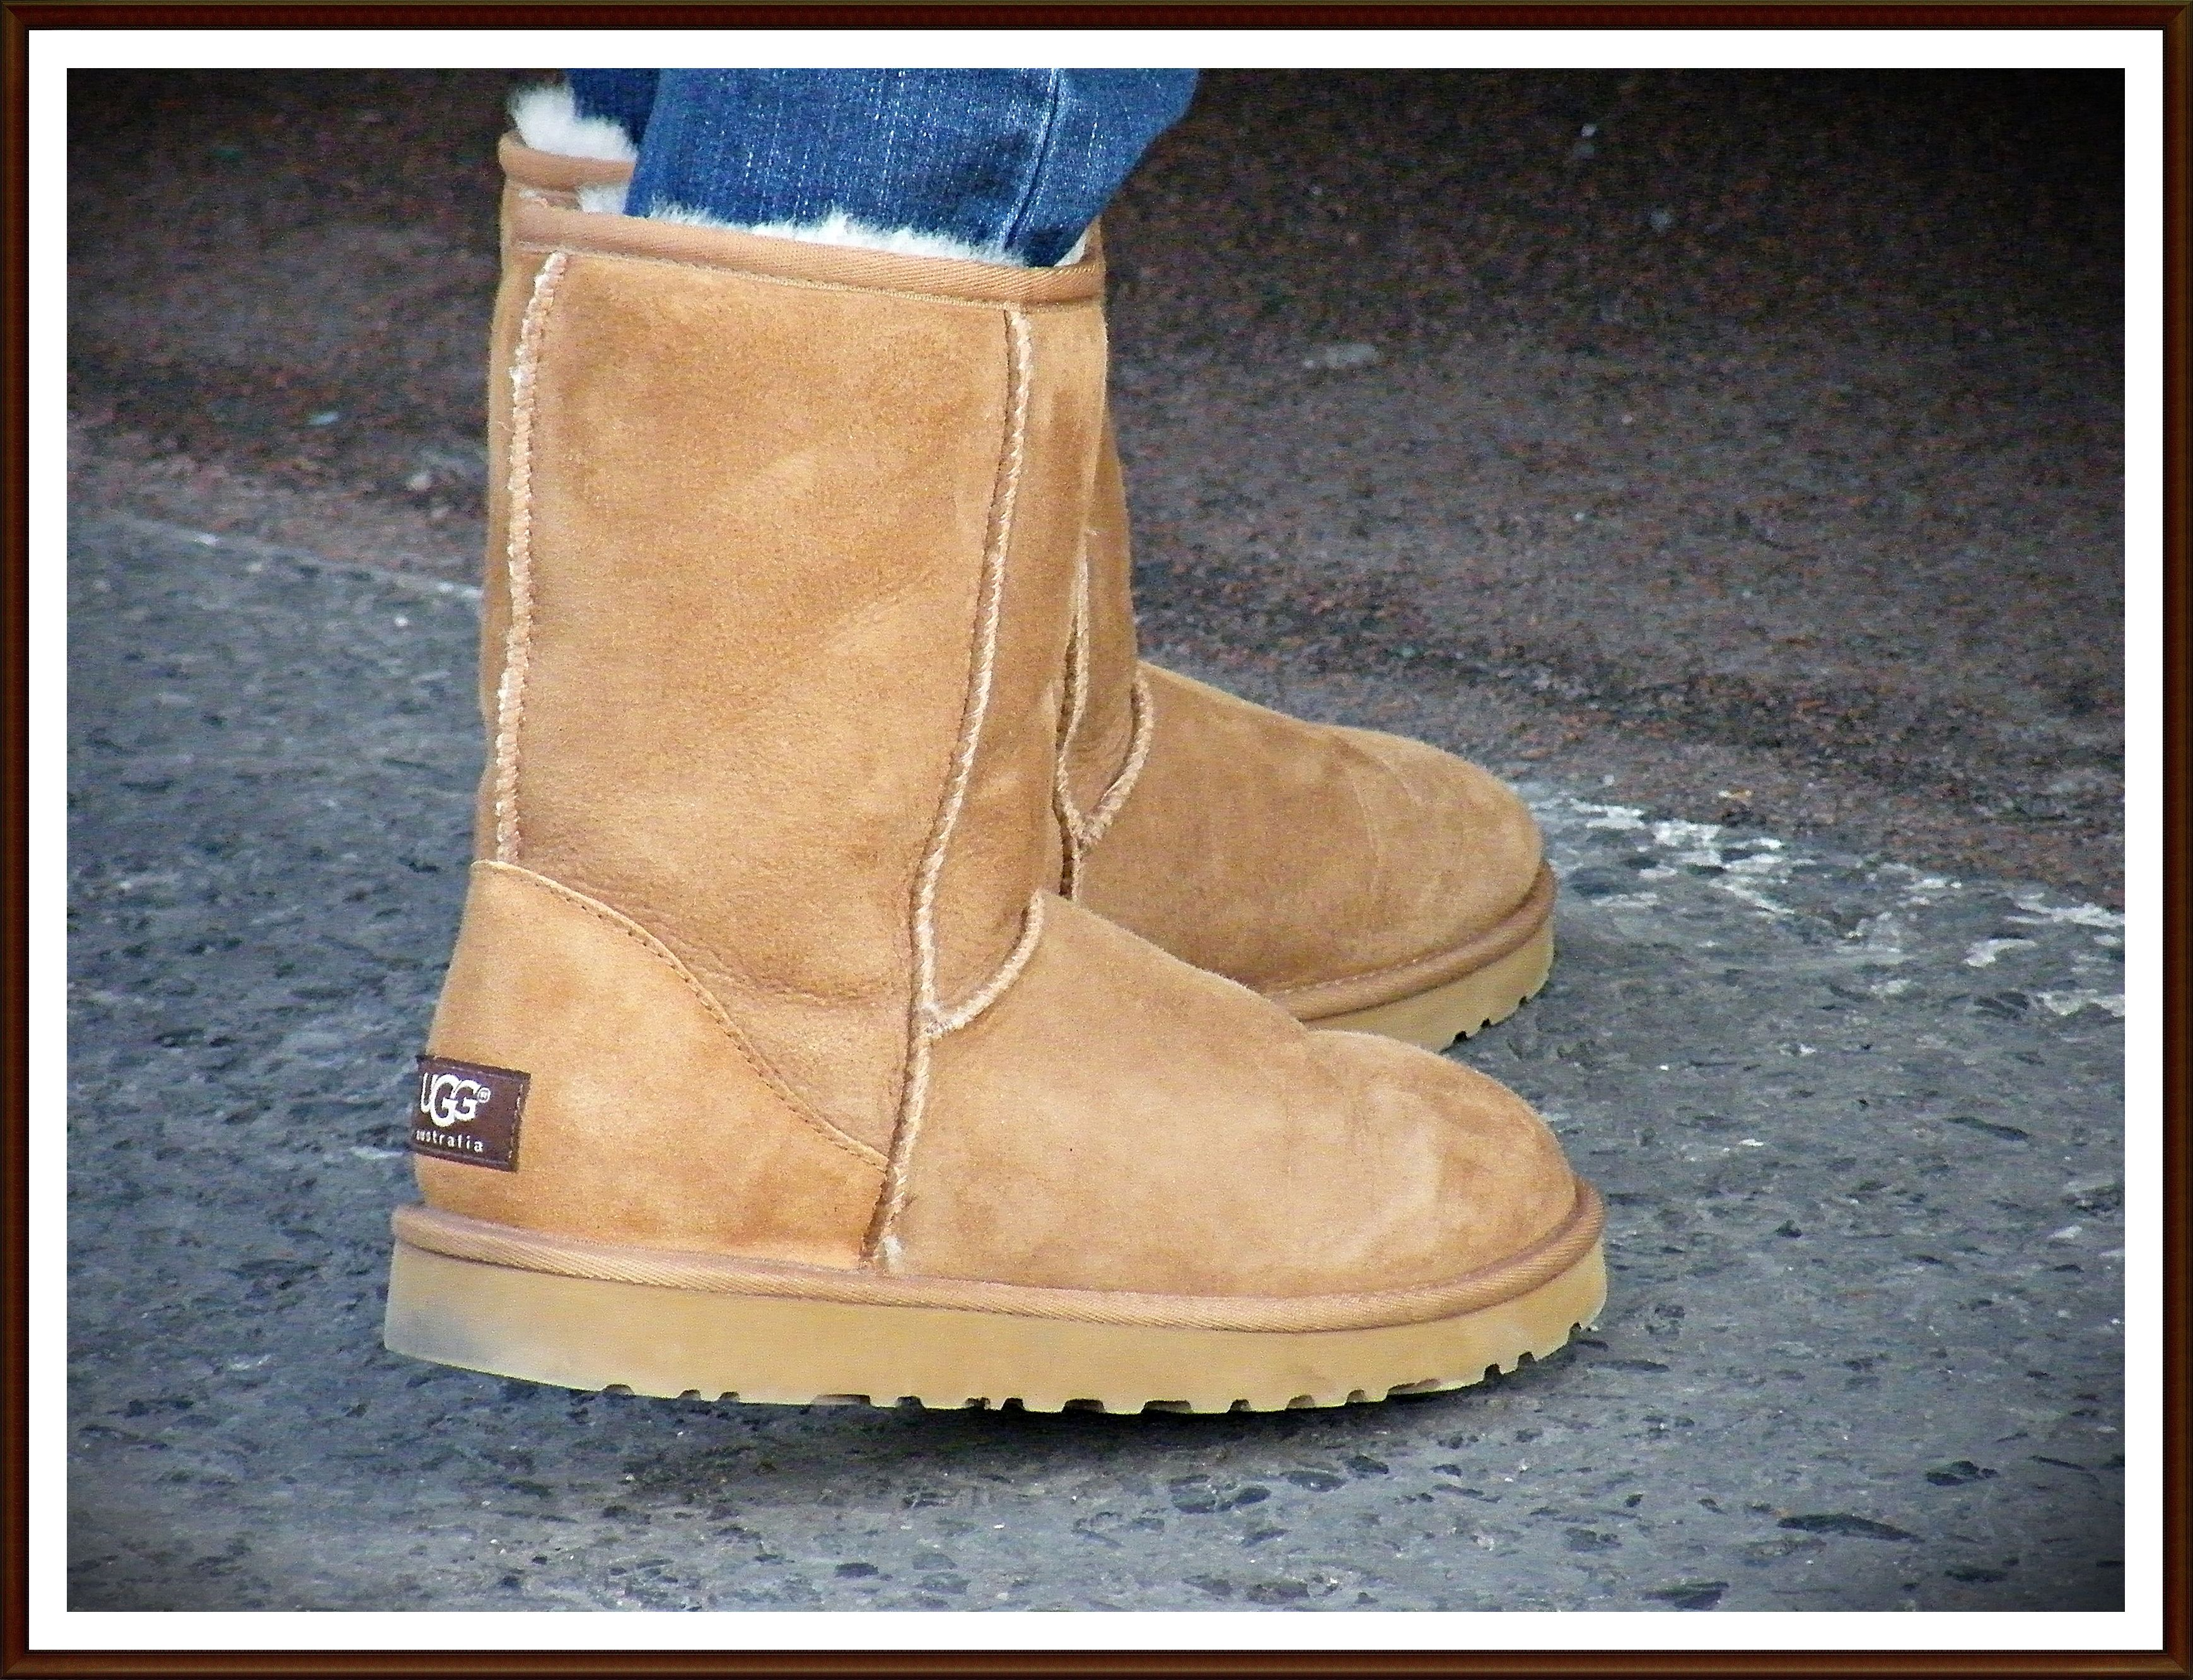 Ugg Boots Probably The Most Amazing Shoes Ever Made Have Originated From Australia Evidenced By The Mass Production O Boots Discount Boots Uggs